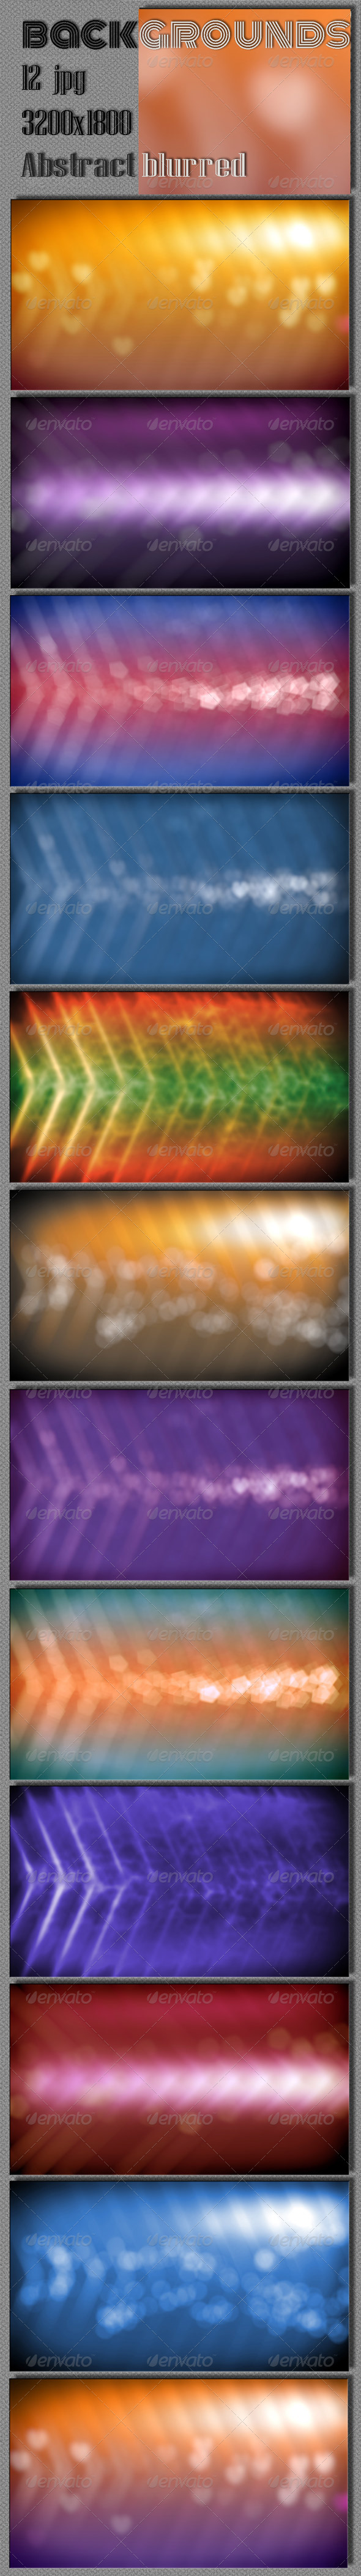 GraphicRiver Abstract Blurred Backgrounds 6726149